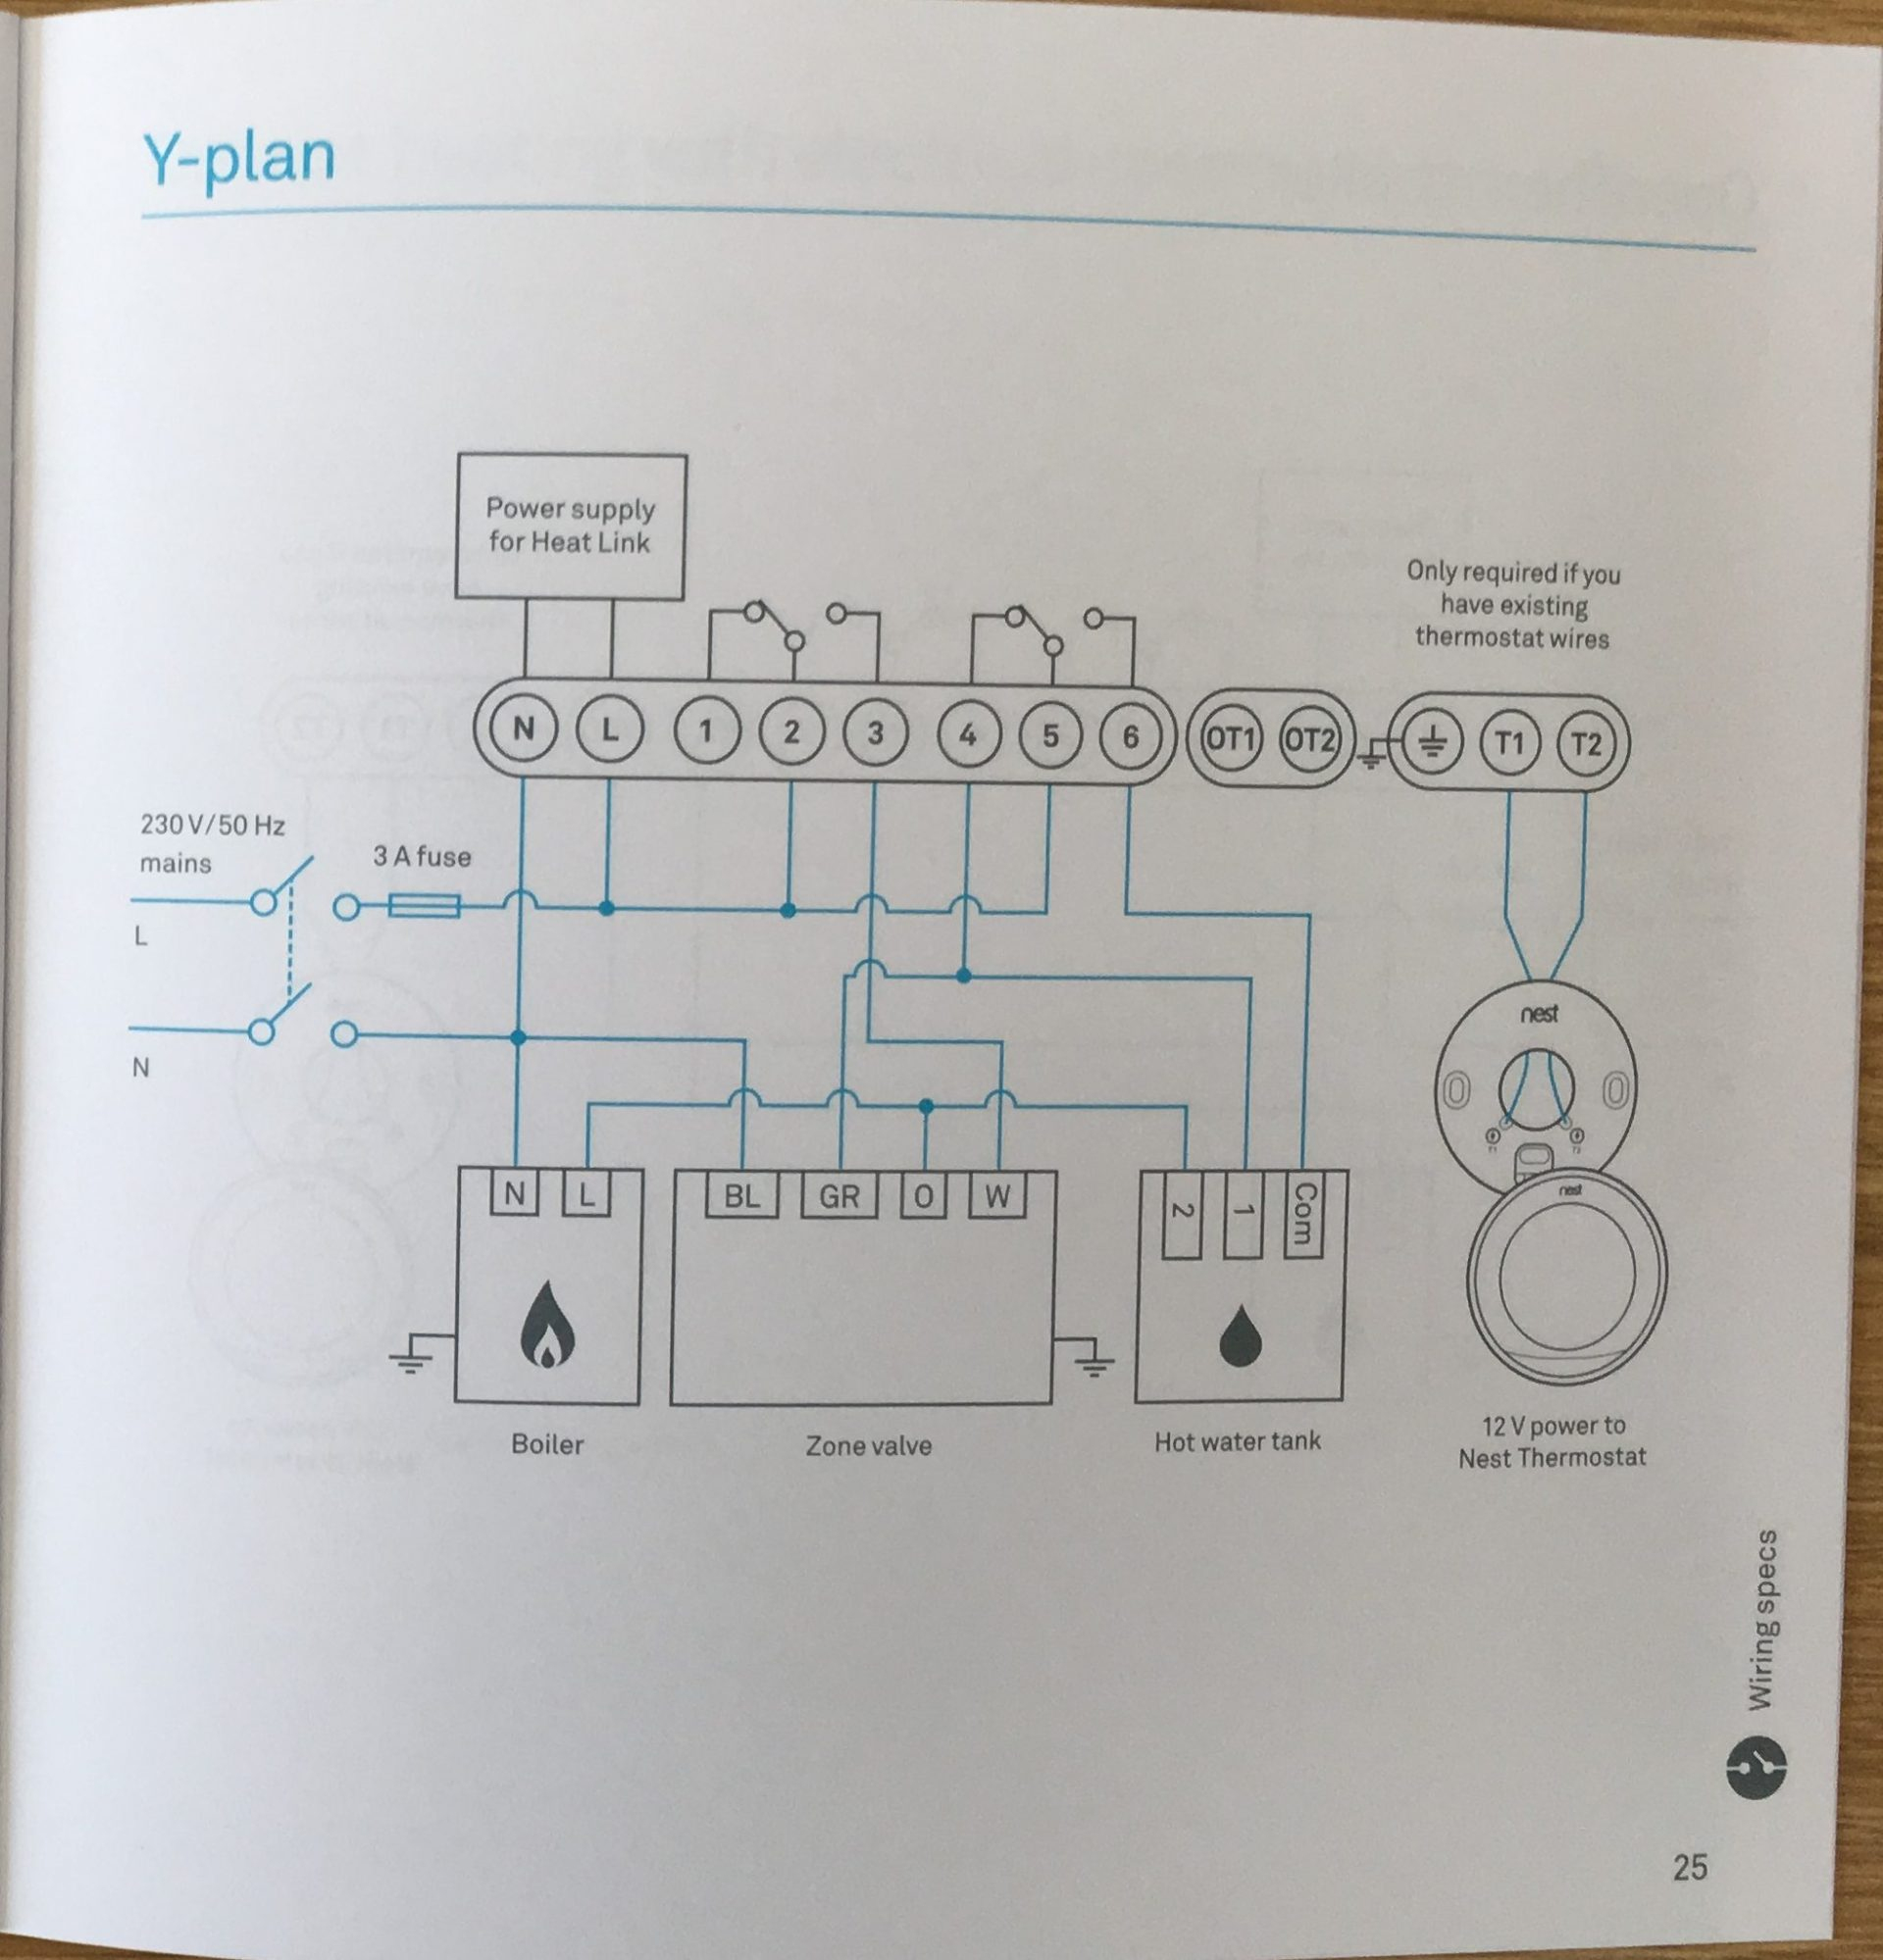 How To Install The Nest Learning Thermostat (3Rd Gen) In A Y-Plan - Nest T Stat Wiring Diagram